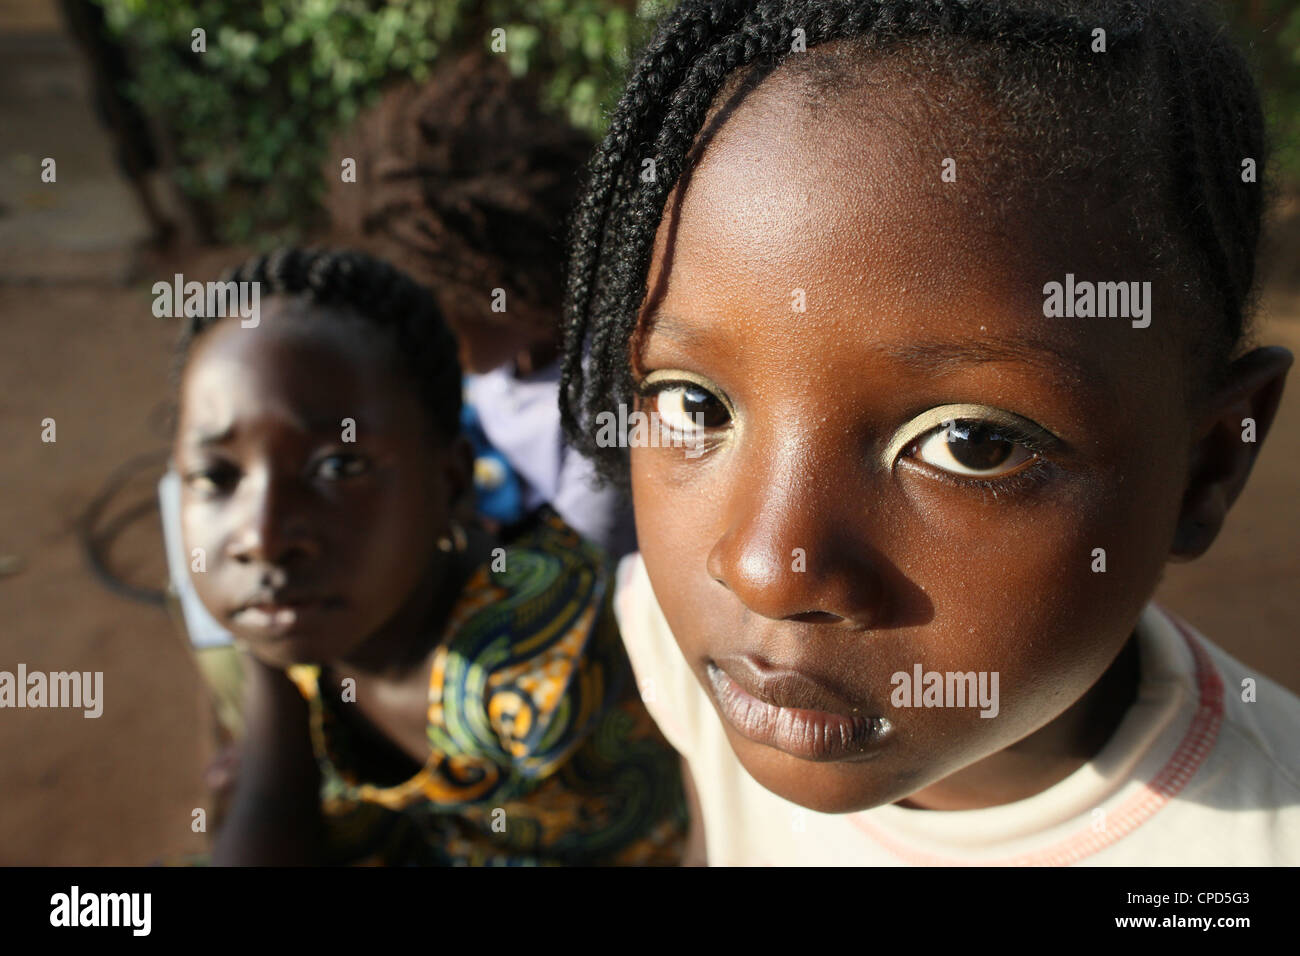 African children, Lome, Togo, West Africa, Africa Stock Photo